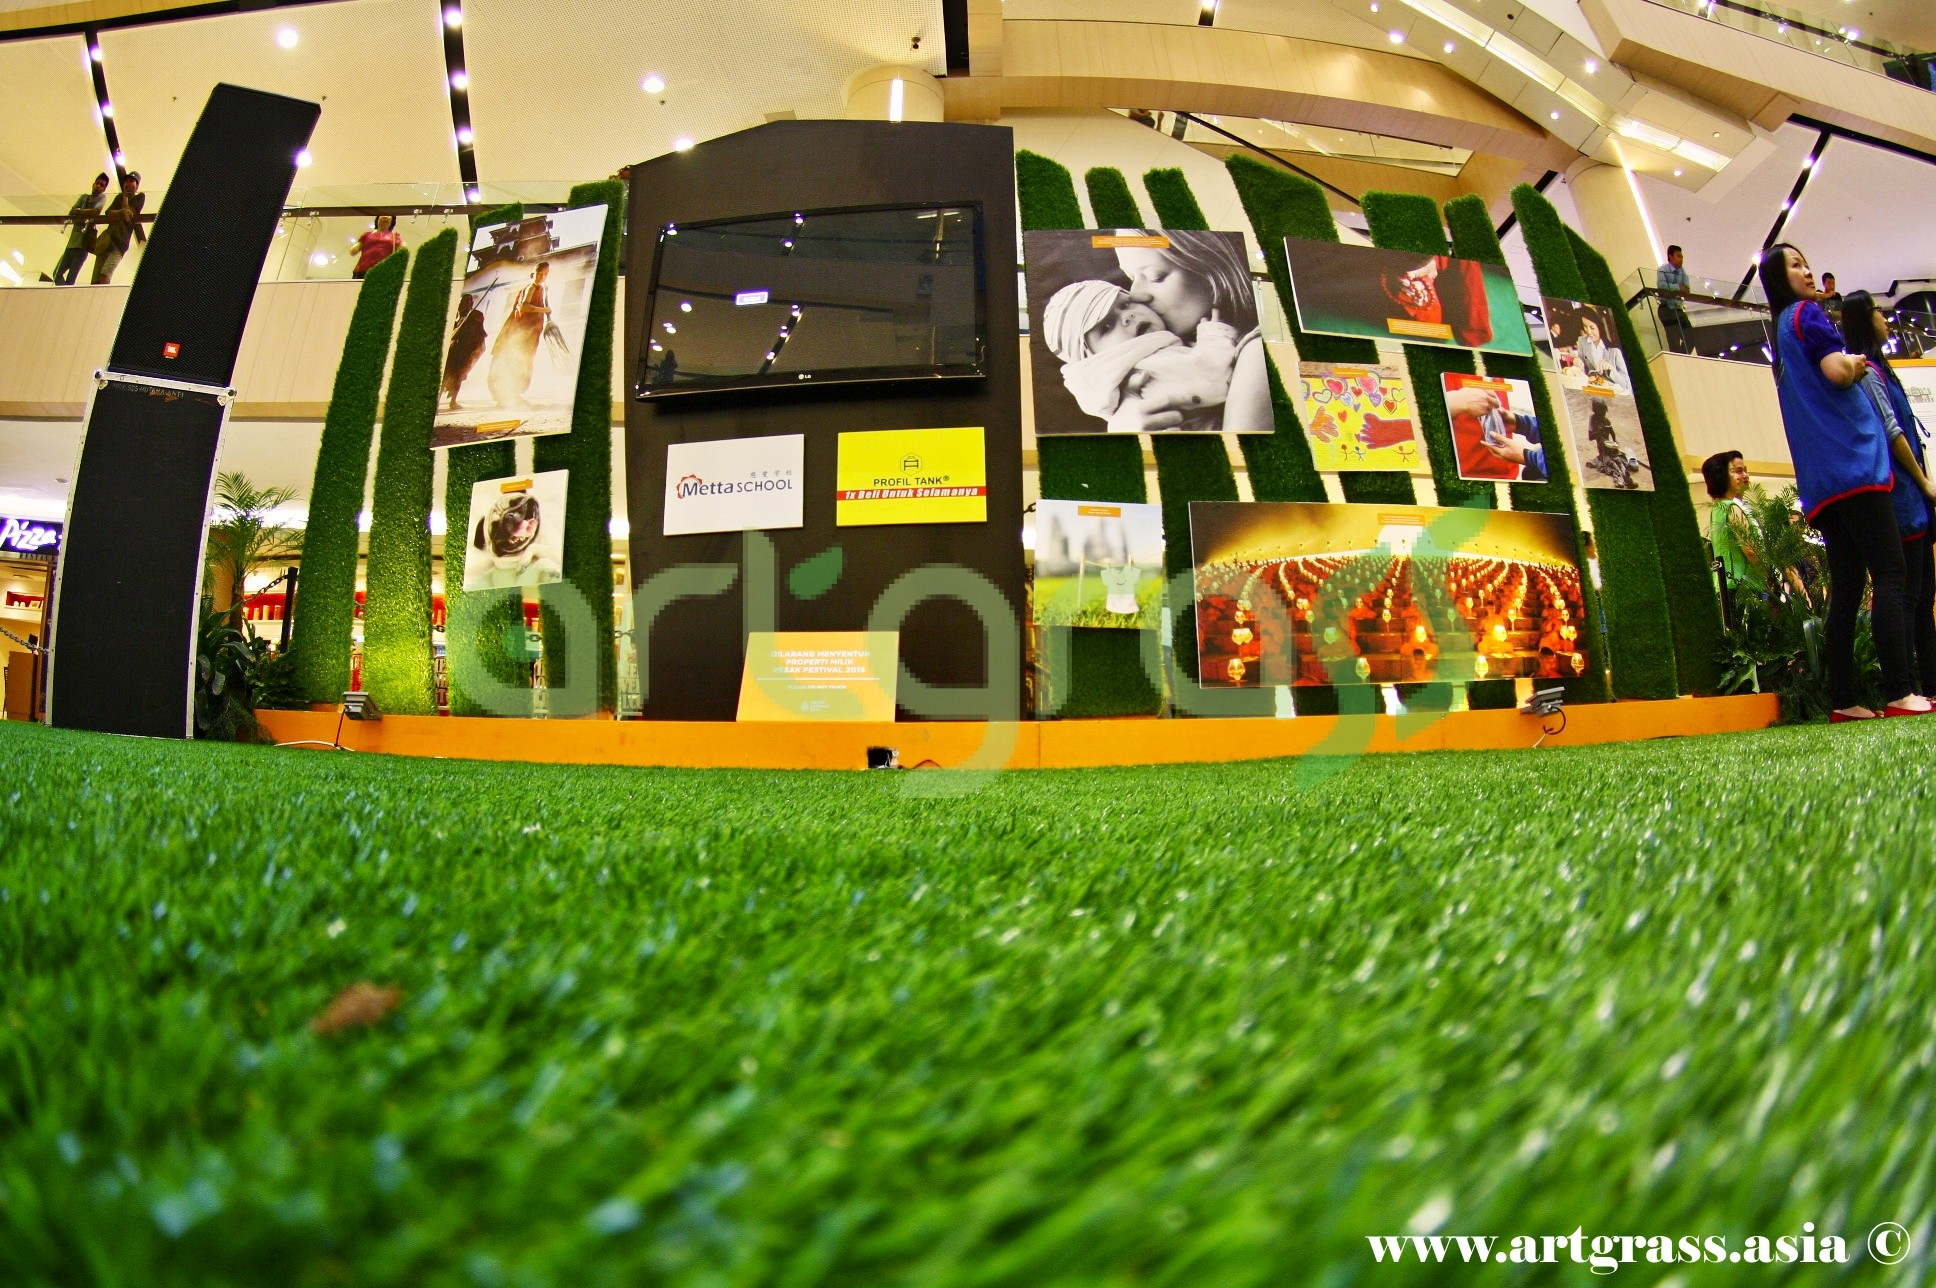 ArtGrass-At-Vesak-Festival-2015-Main-Atrium-Tunjungan-Plaza-28Mei-2015-Wall-of-Humanity